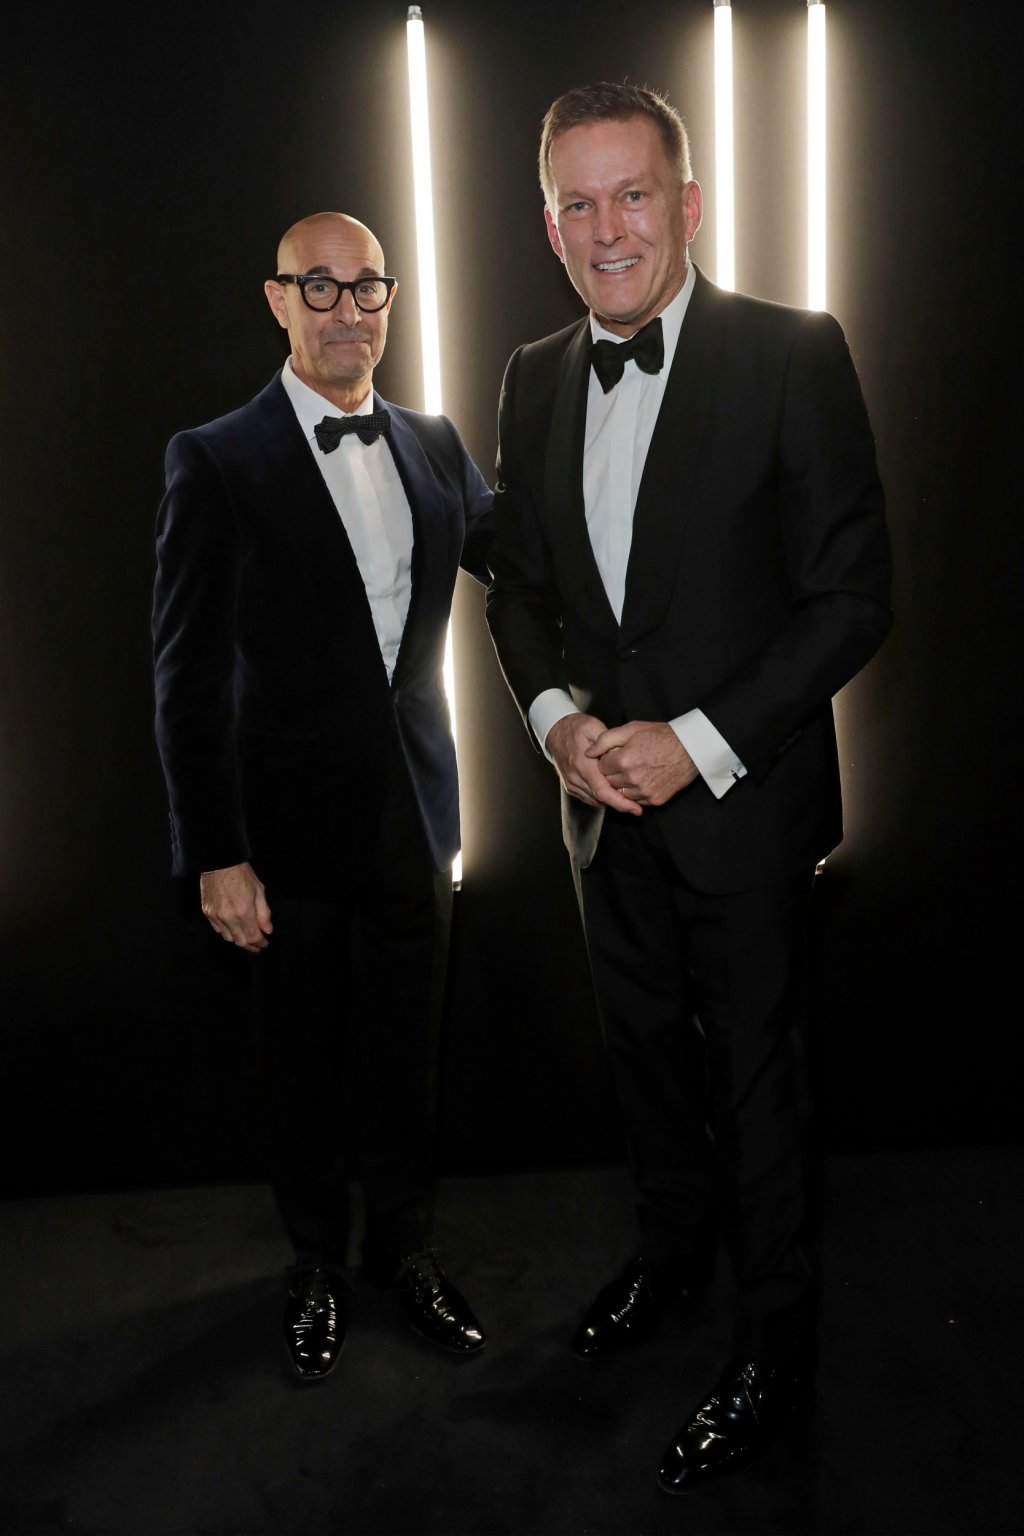 Stanley Tucci and CEO of Dunhill Andrew Maag